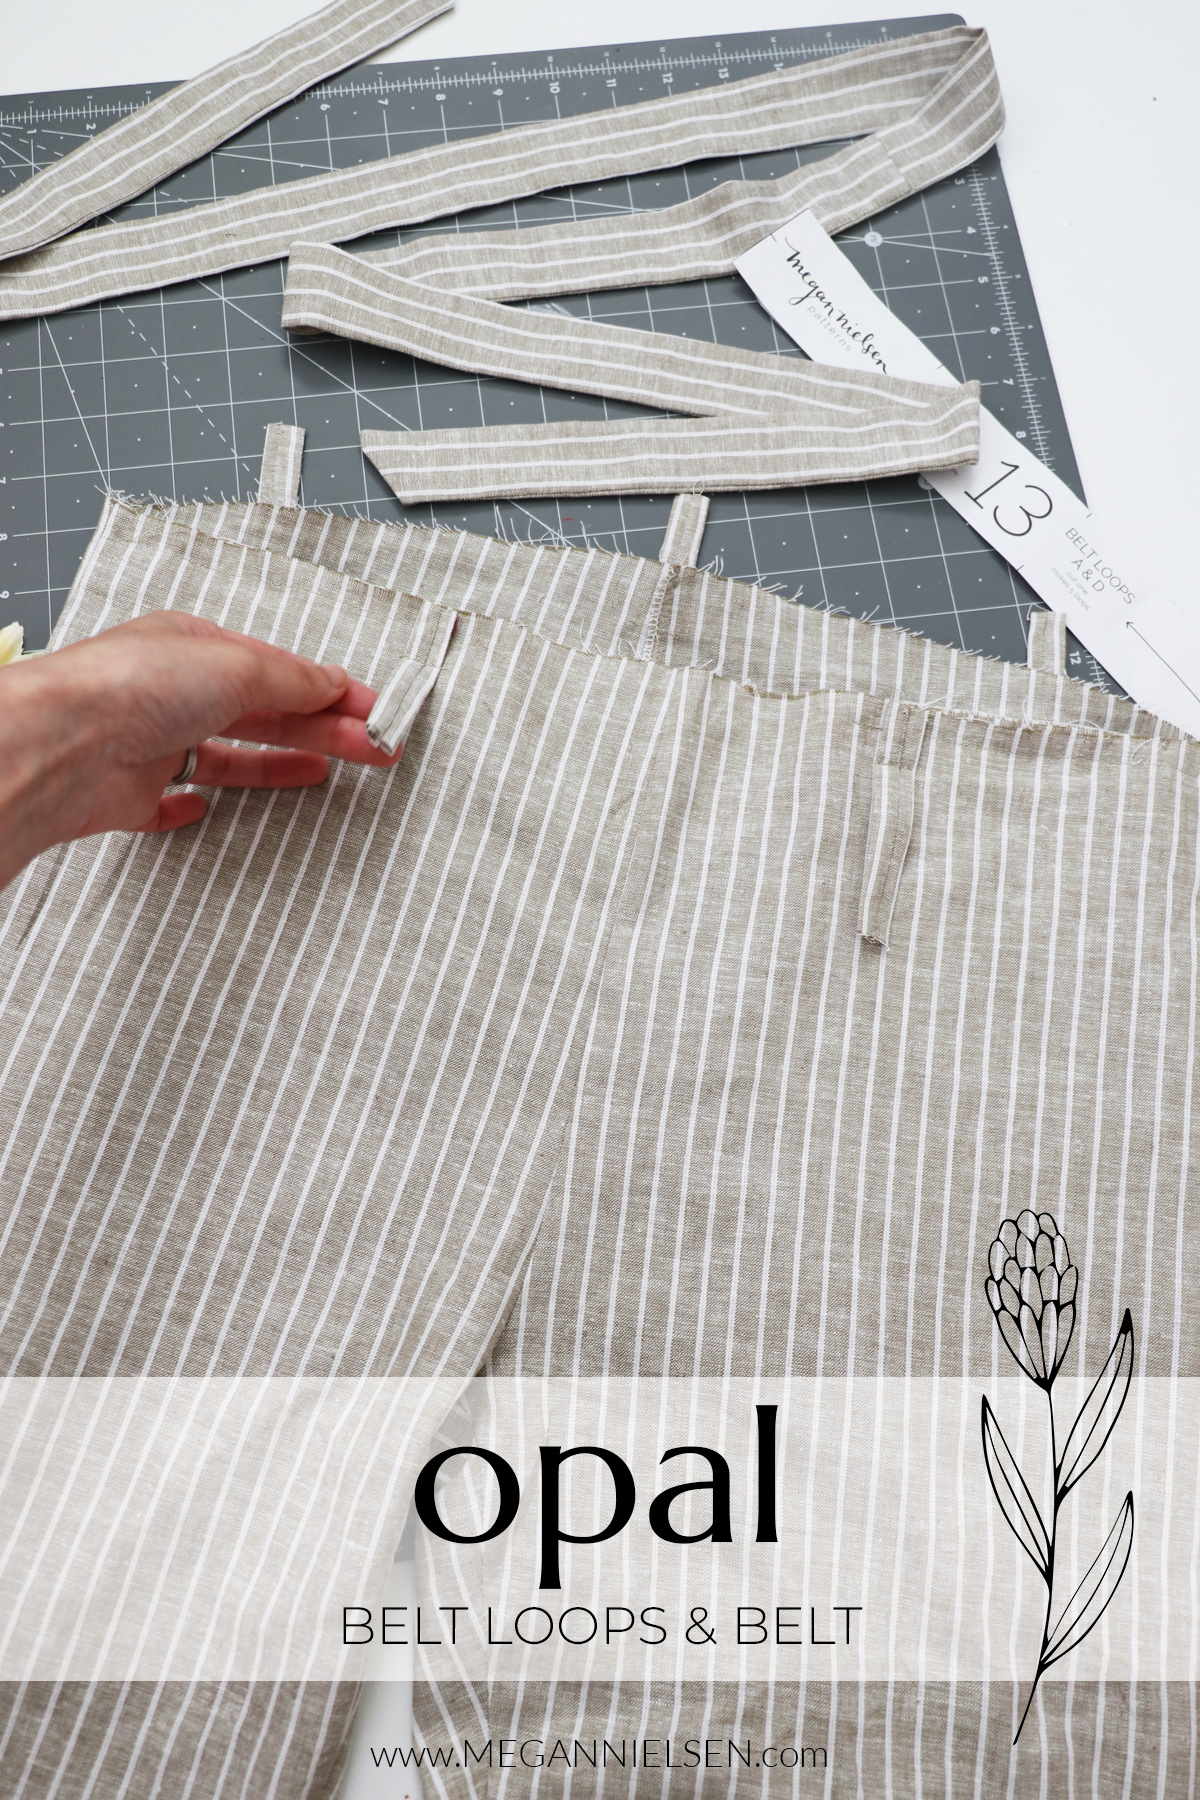 Opal sewalong belt and belt loops for the Opal pants and shorts pattern